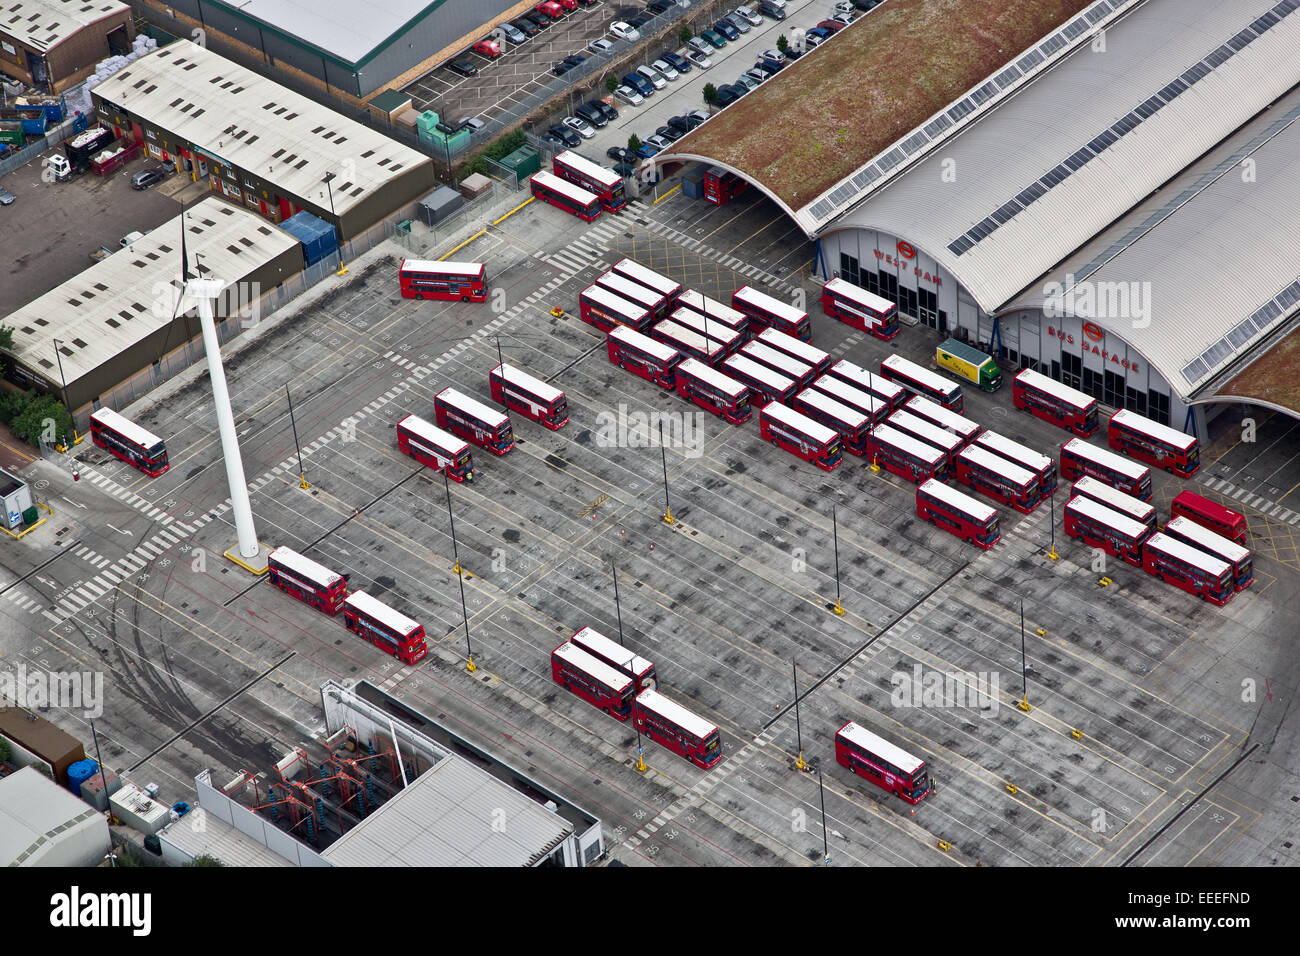 Aerial view of West Ham Bus Garage - Stock Image